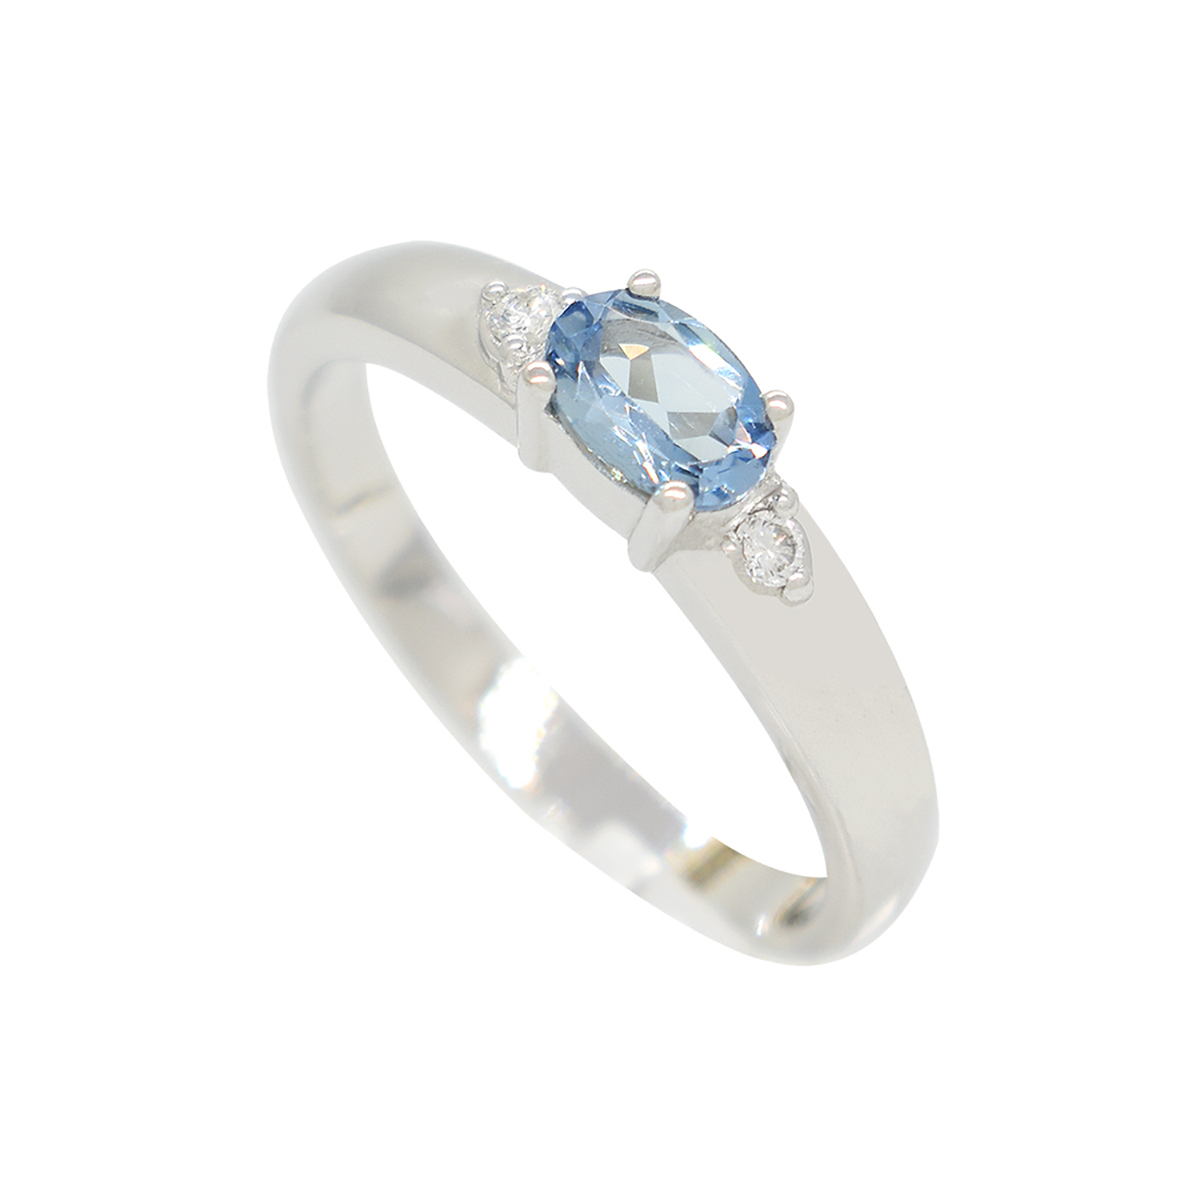 east-west-3-stones-aquamarine-and-diamond-ring-in-18k-white-gold